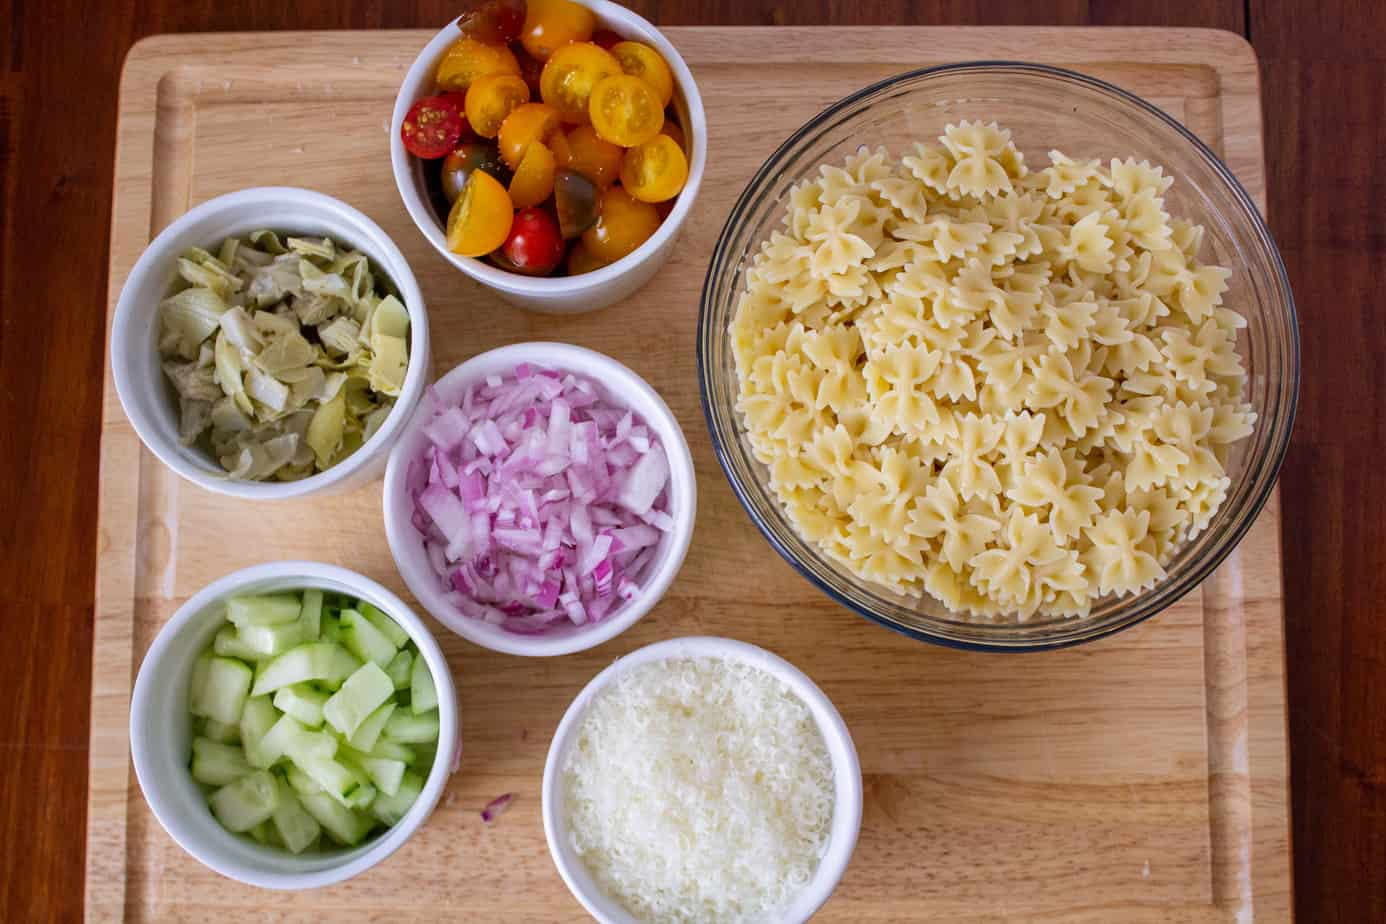 pasta, cherry tomatoes, red onions, parmesan, cucumbers, artichokes in bowls on a cutting board